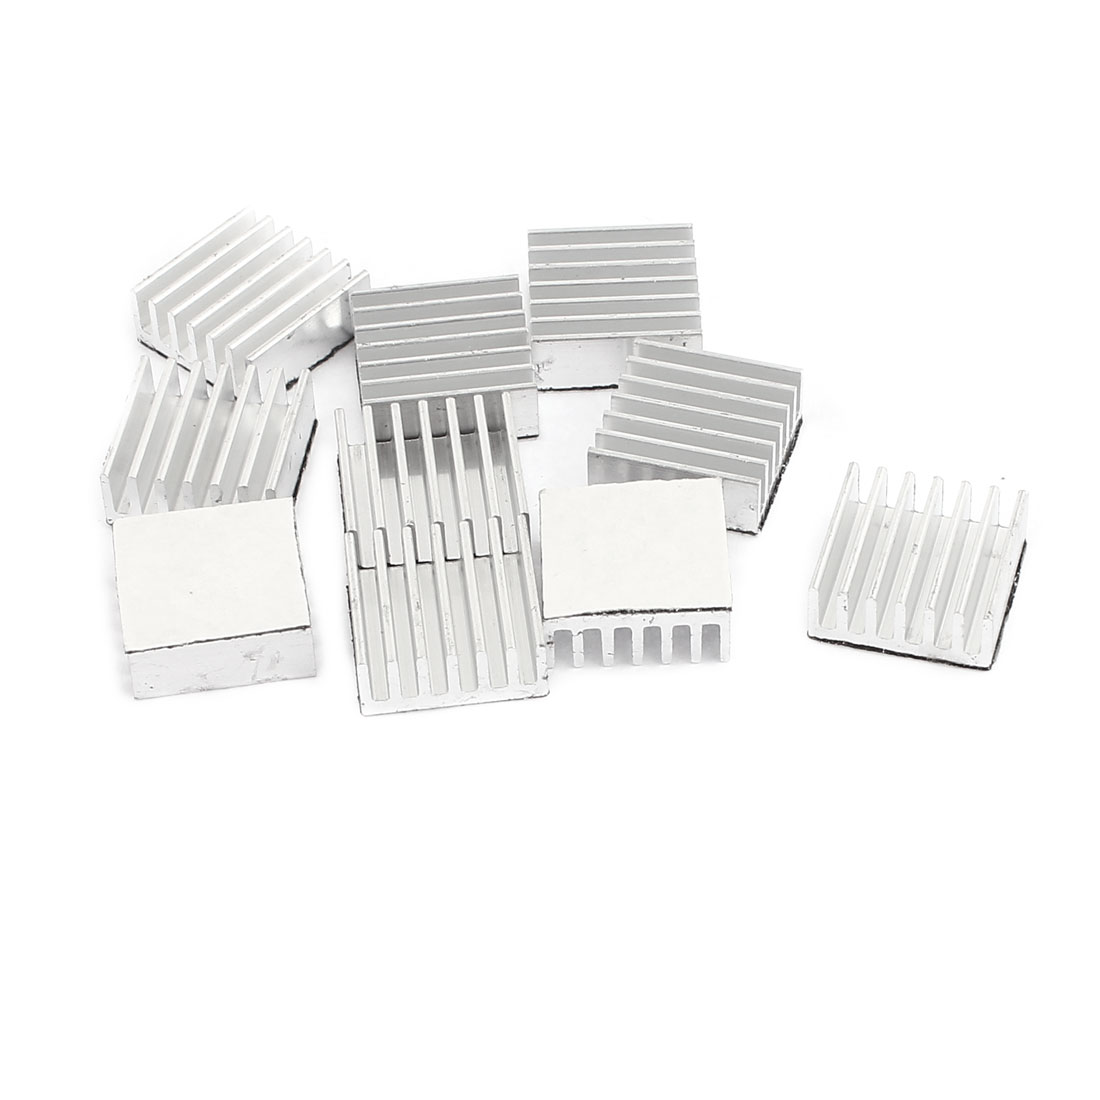 10Pcs 14 x 14 x 6mm Aluminium Heat Sink Radiator Fin Heatsink Silver Tone for IC